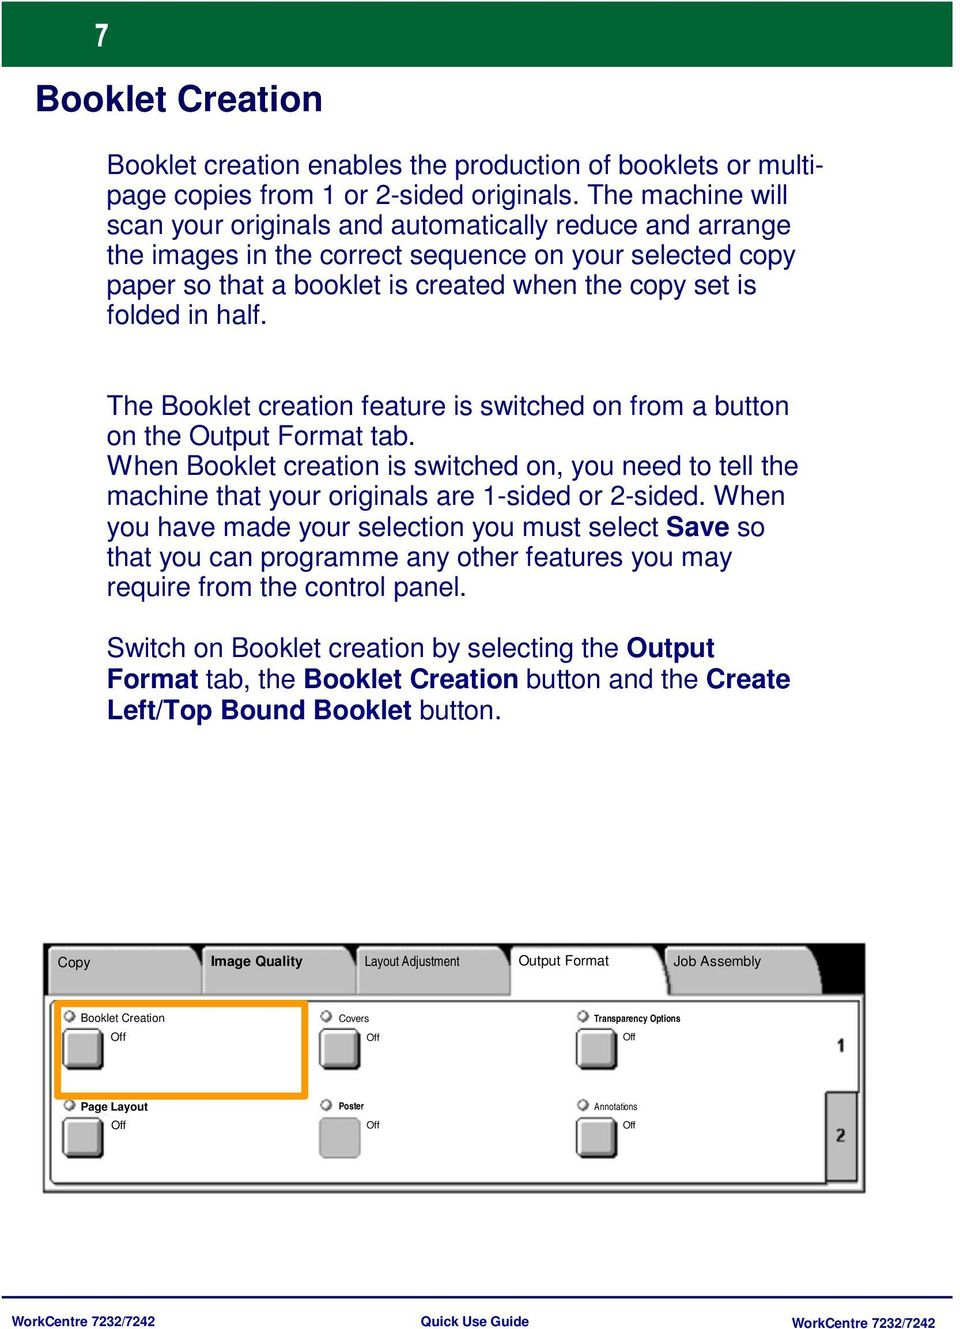 half. The Booklet creation feature is switched on from a button on the Output Format tab. When Booklet creation is switched on, you need to tell the machine that your originals are 1-sided or 2-sided.